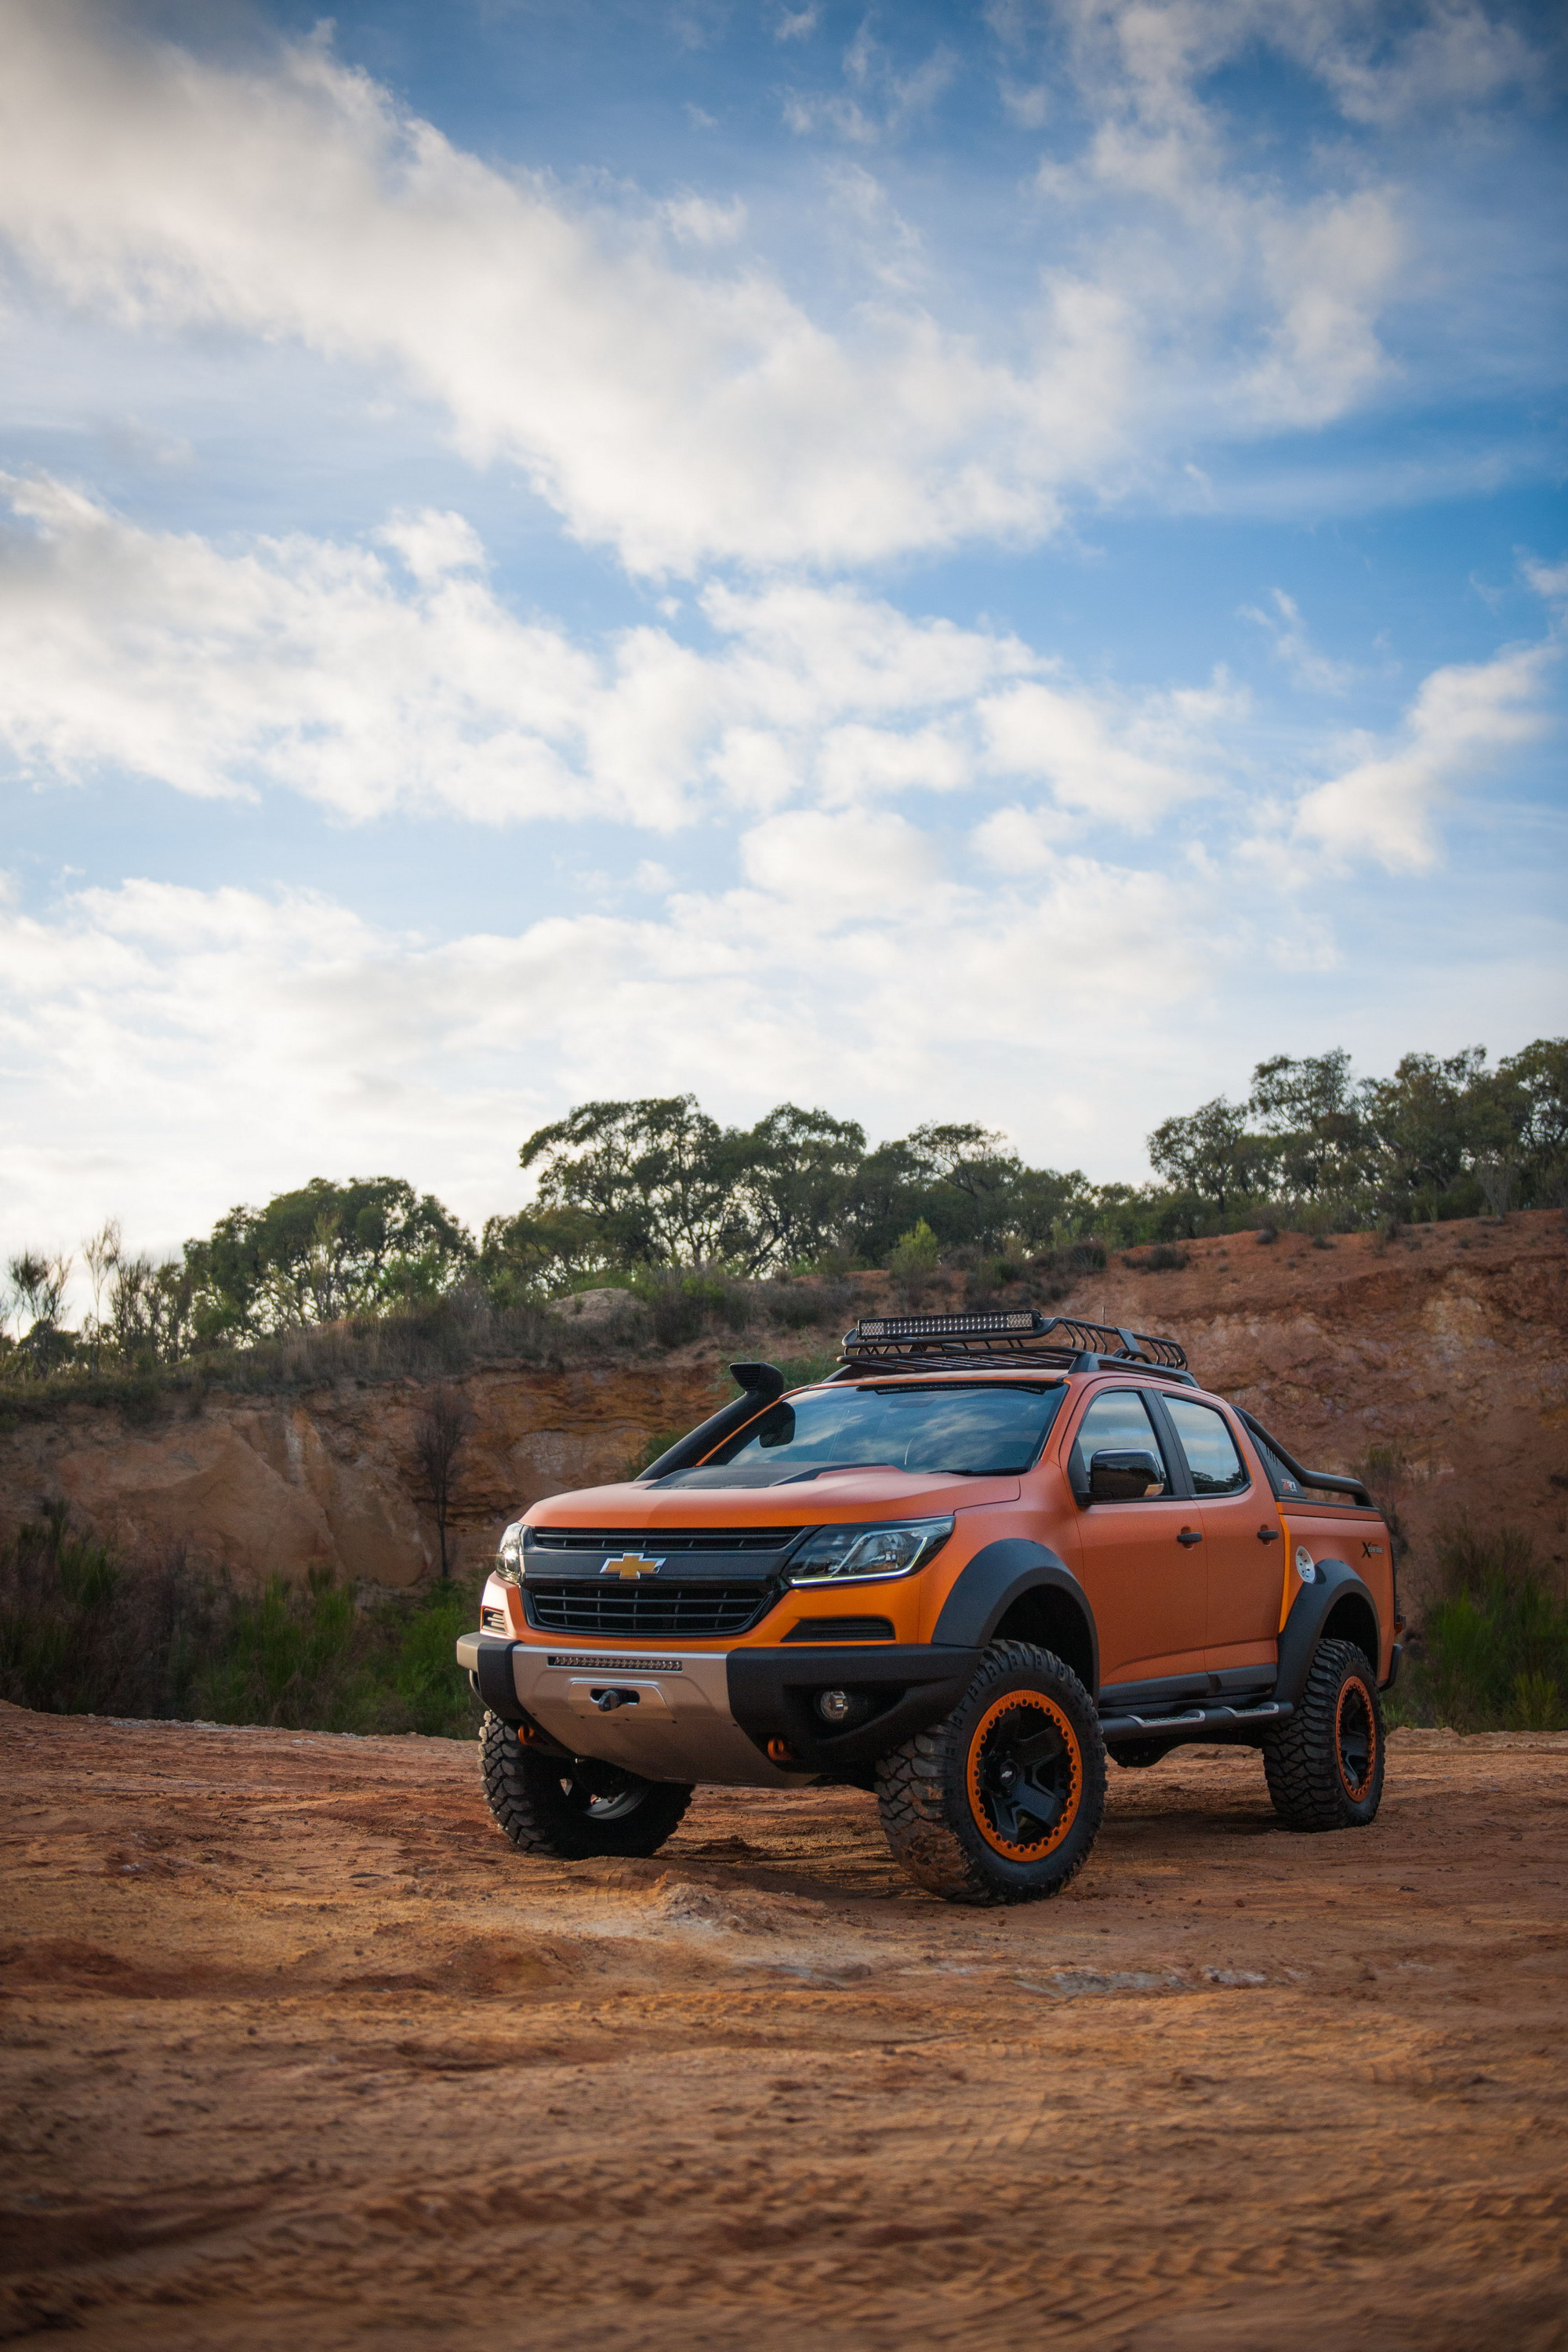 Chevrolet s thailand division recently rolled out an off road concept version of the global colorado pickup truck called the colorado xtreme